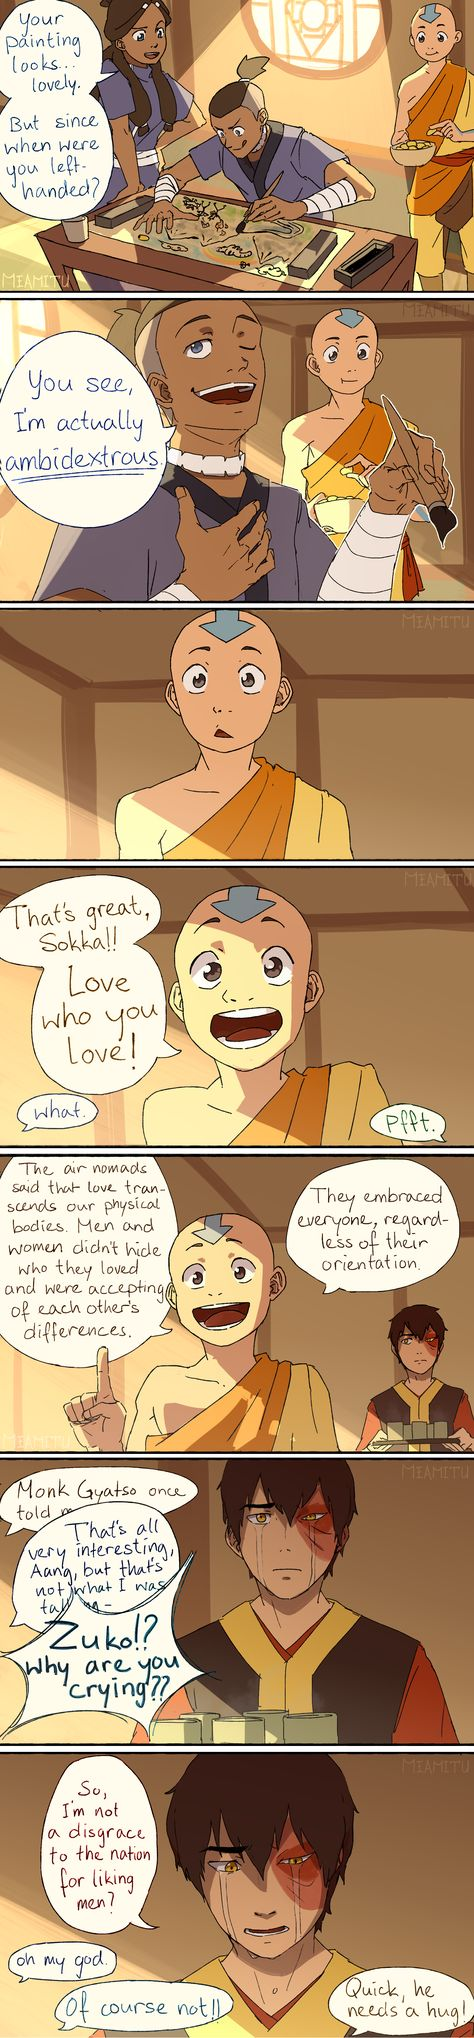 Avatar Aang, Avatar The Last Airbender Funny, The Last Avatar, Avatar Funny, Team Avatar, Avatar Airbender, Atla Memes, Avatar World, Avatar Series